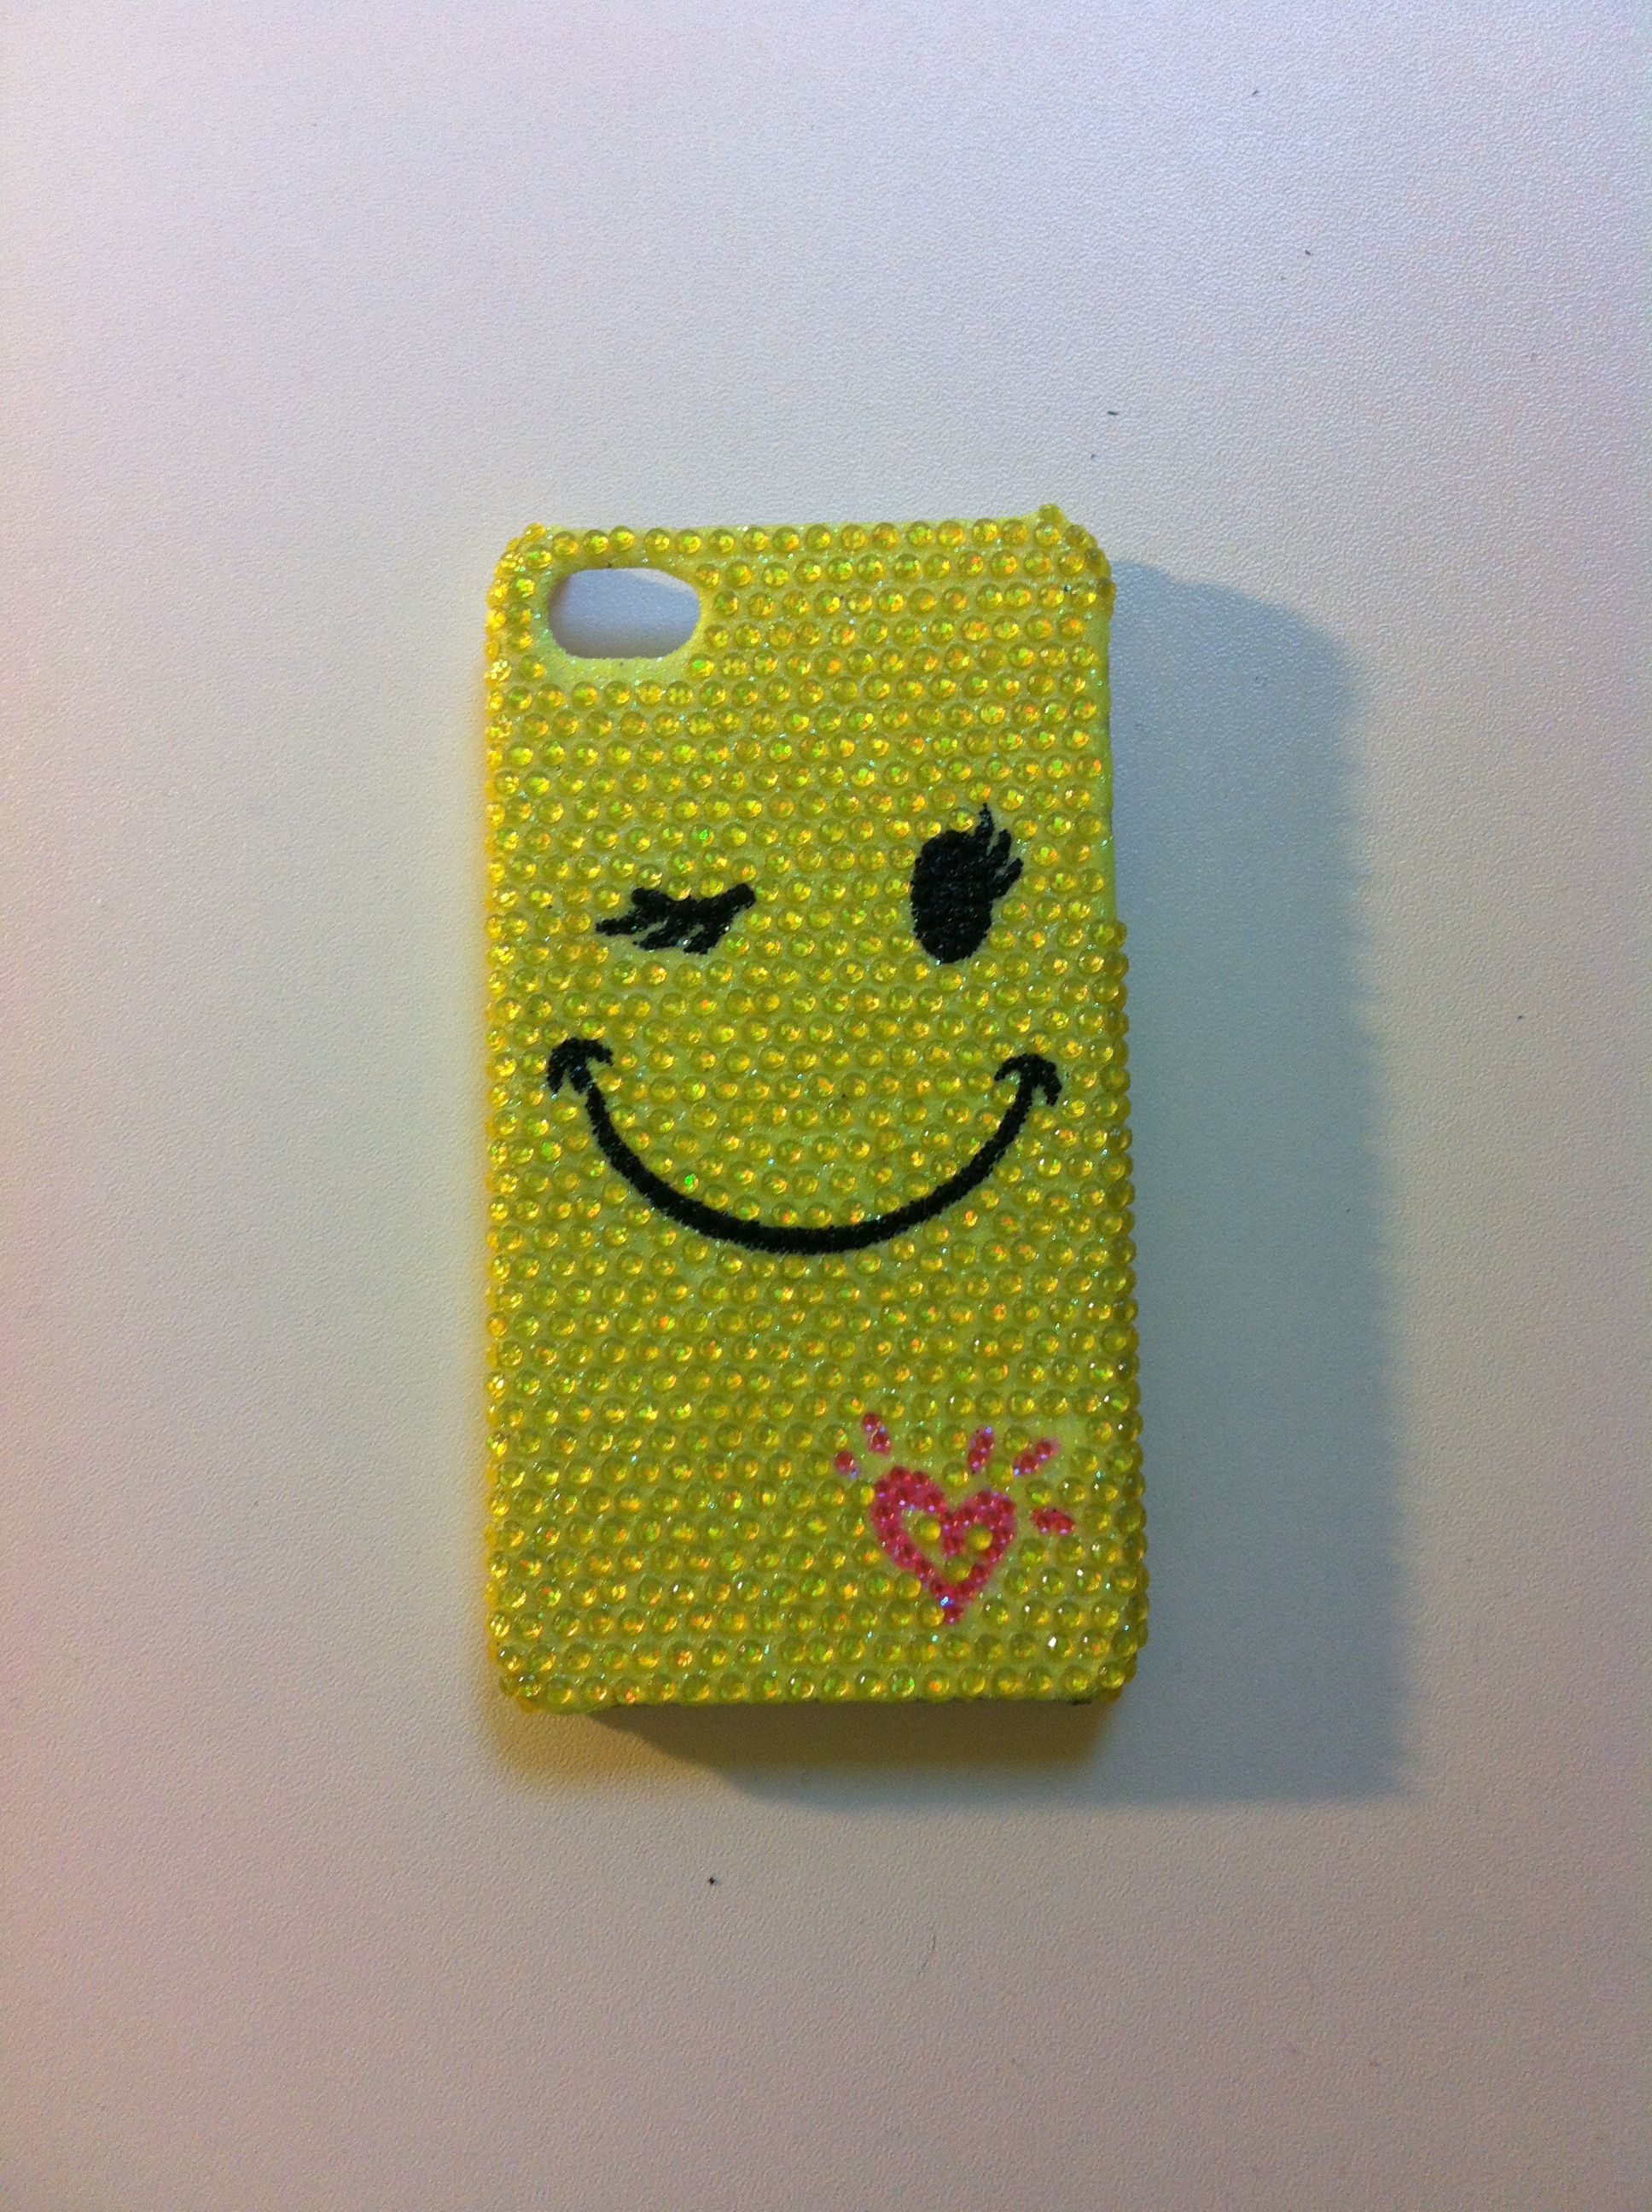 Pin By Lulu On Wish List Phone Cases Cute Phone Cases Emoji Phone Cases